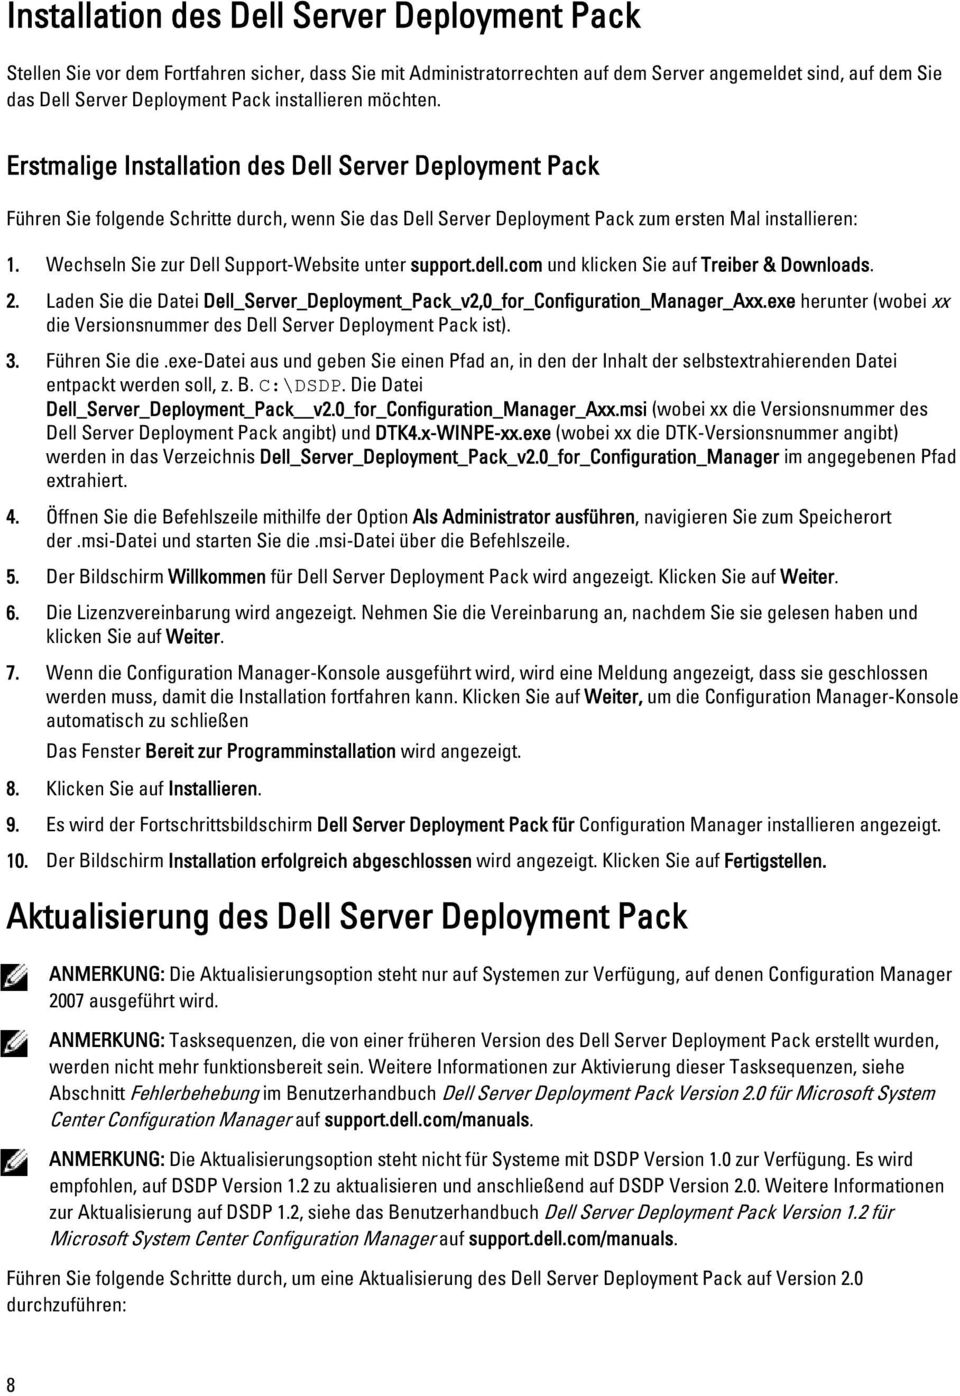 Wechseln Sie zur Dell Support-Website unter support.dell.com und klicken Sie auf Treiber & Downloads. 2. Laden Sie die Datei Dell_Server_Deployment_Pack_v2,0_for_Configuration_Manager_Axx.